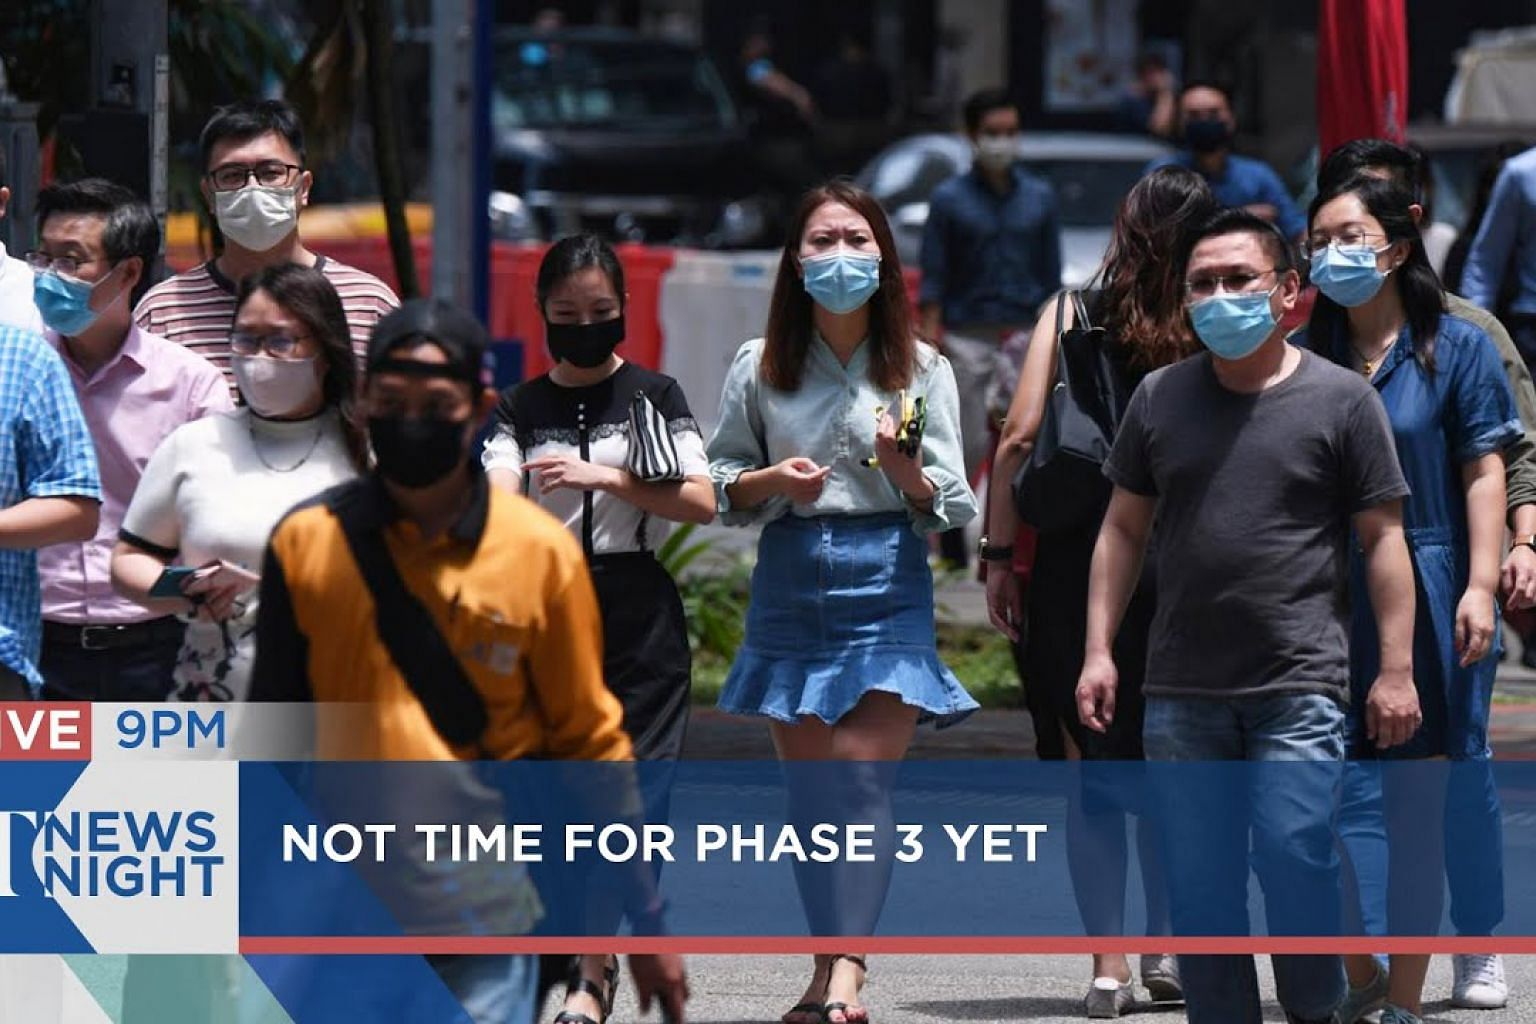 Not time for Phase 3 yet | New breathalyser test for Covid-19 | ST NEWS NIGHT